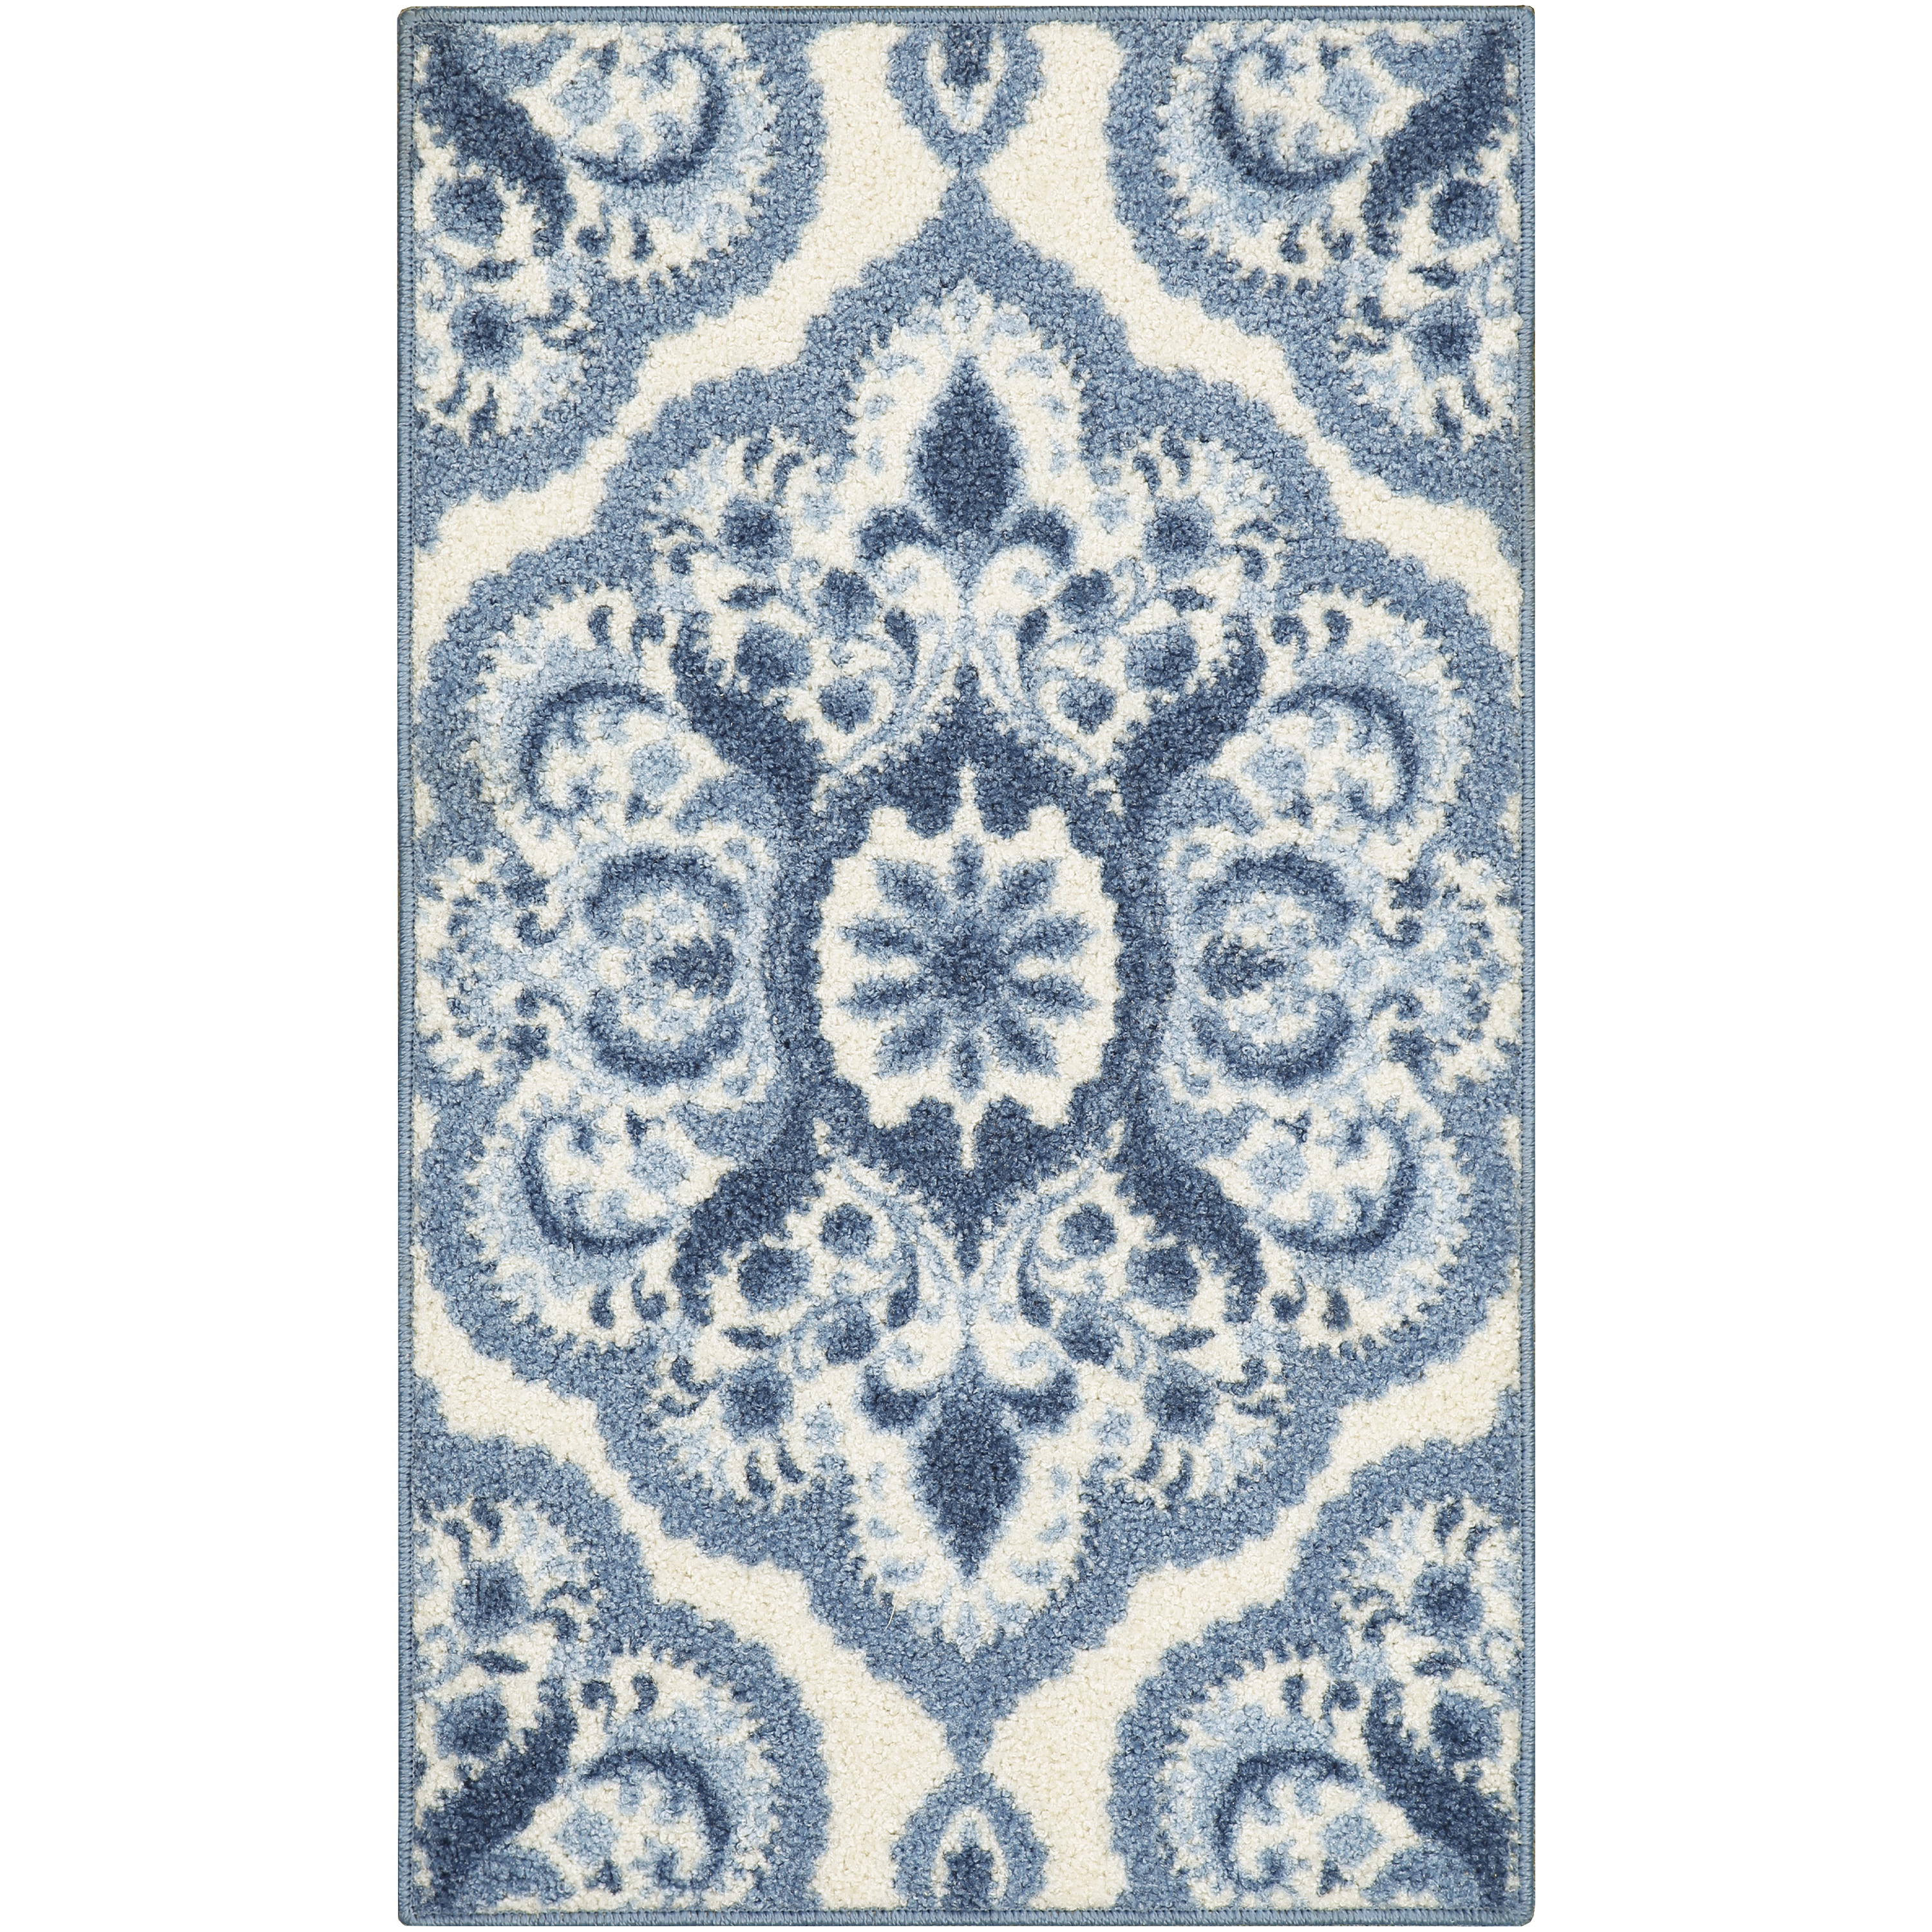 Mainstays Roxanne Textured Print Area Rug or Runner, Multiple Sizes and Colors